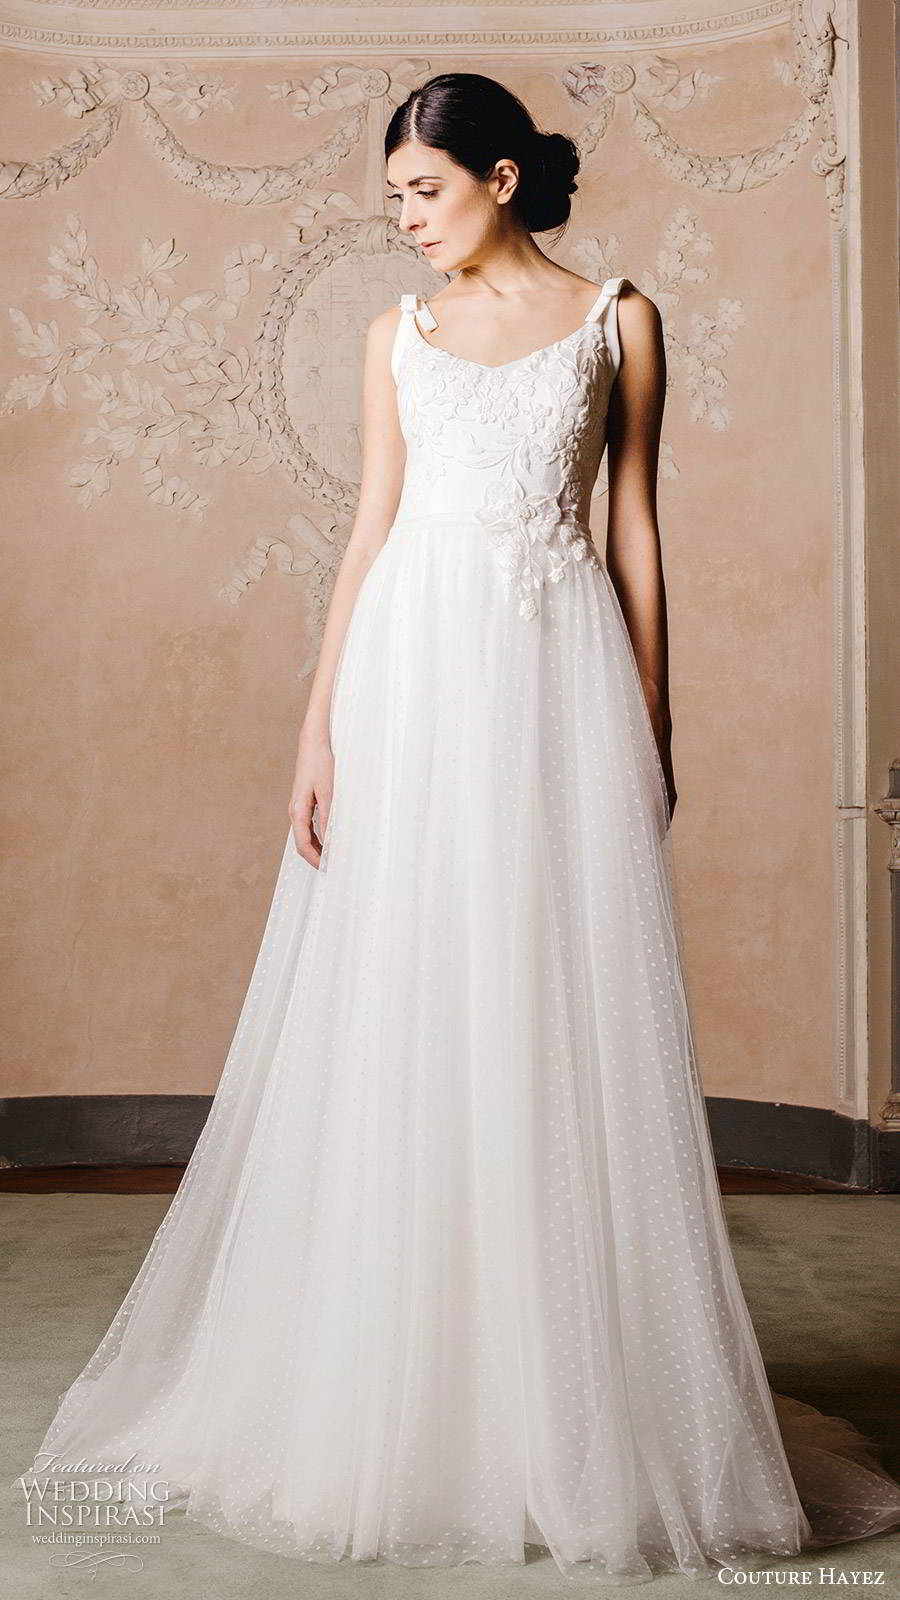 couture hayez 2020 bridal sleeveless thick straps semi sweetheart embellished bodice ball gown a line wedding dress (6) elegant romantic v back chapel train mv